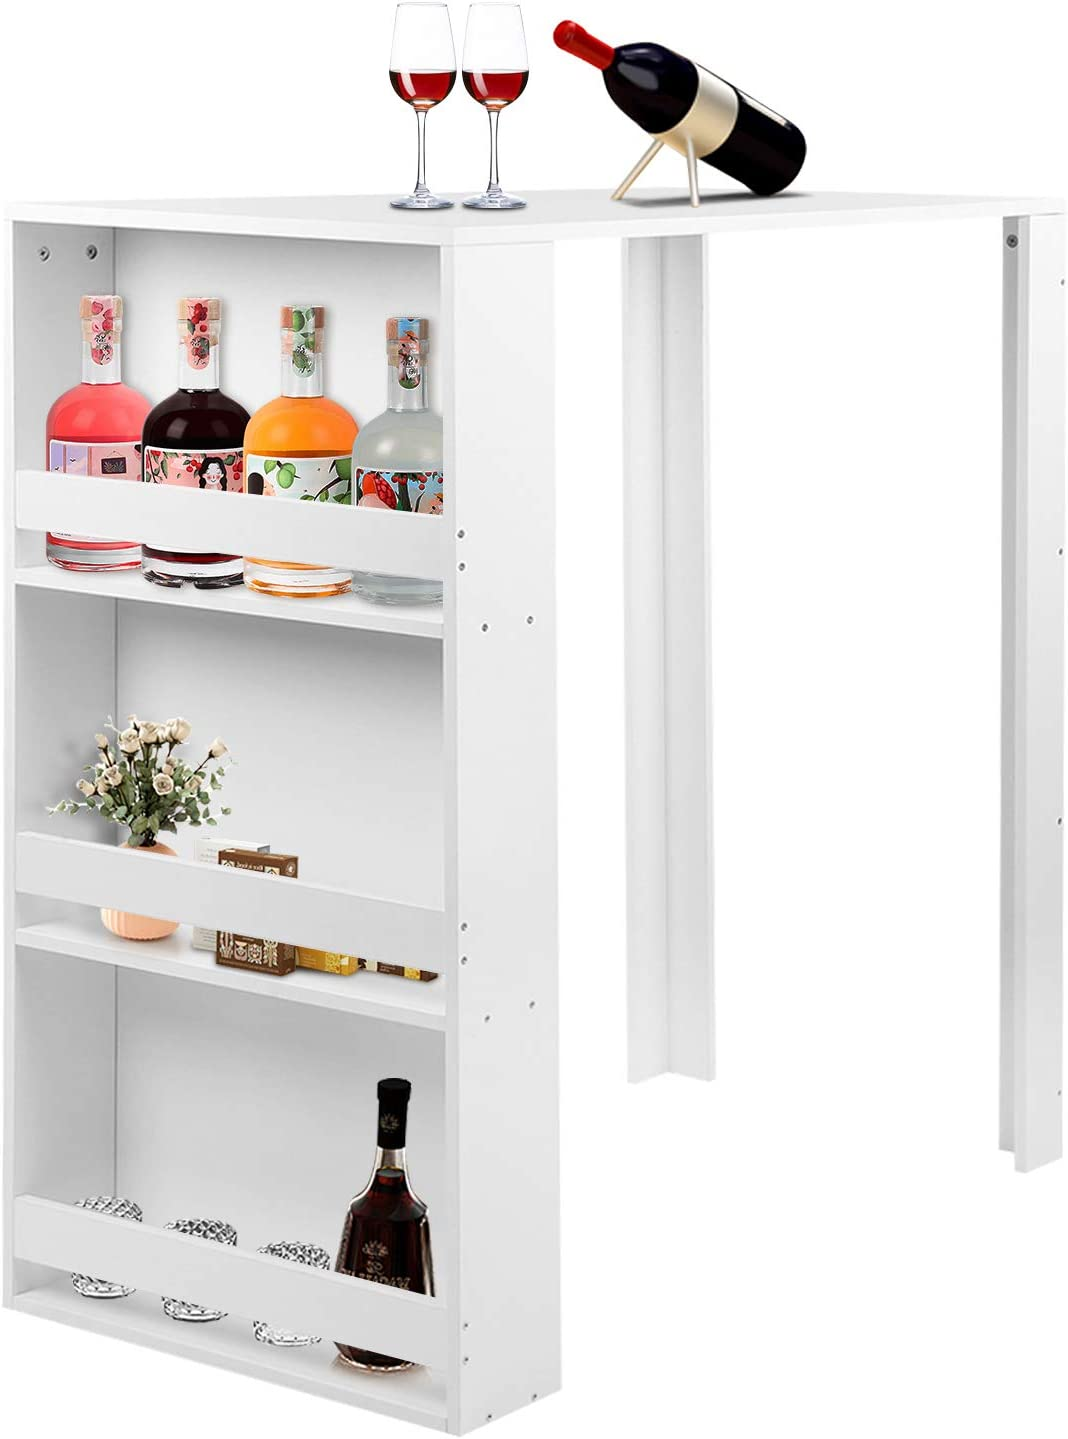 Bar Table with Storage, Modern Counter Height Pub Table Wooden Kitchen High Dining Table with Side Cabinet Storage Shelf for Home, Living Room, Dining Room, Bar, Pub and Small Places, White